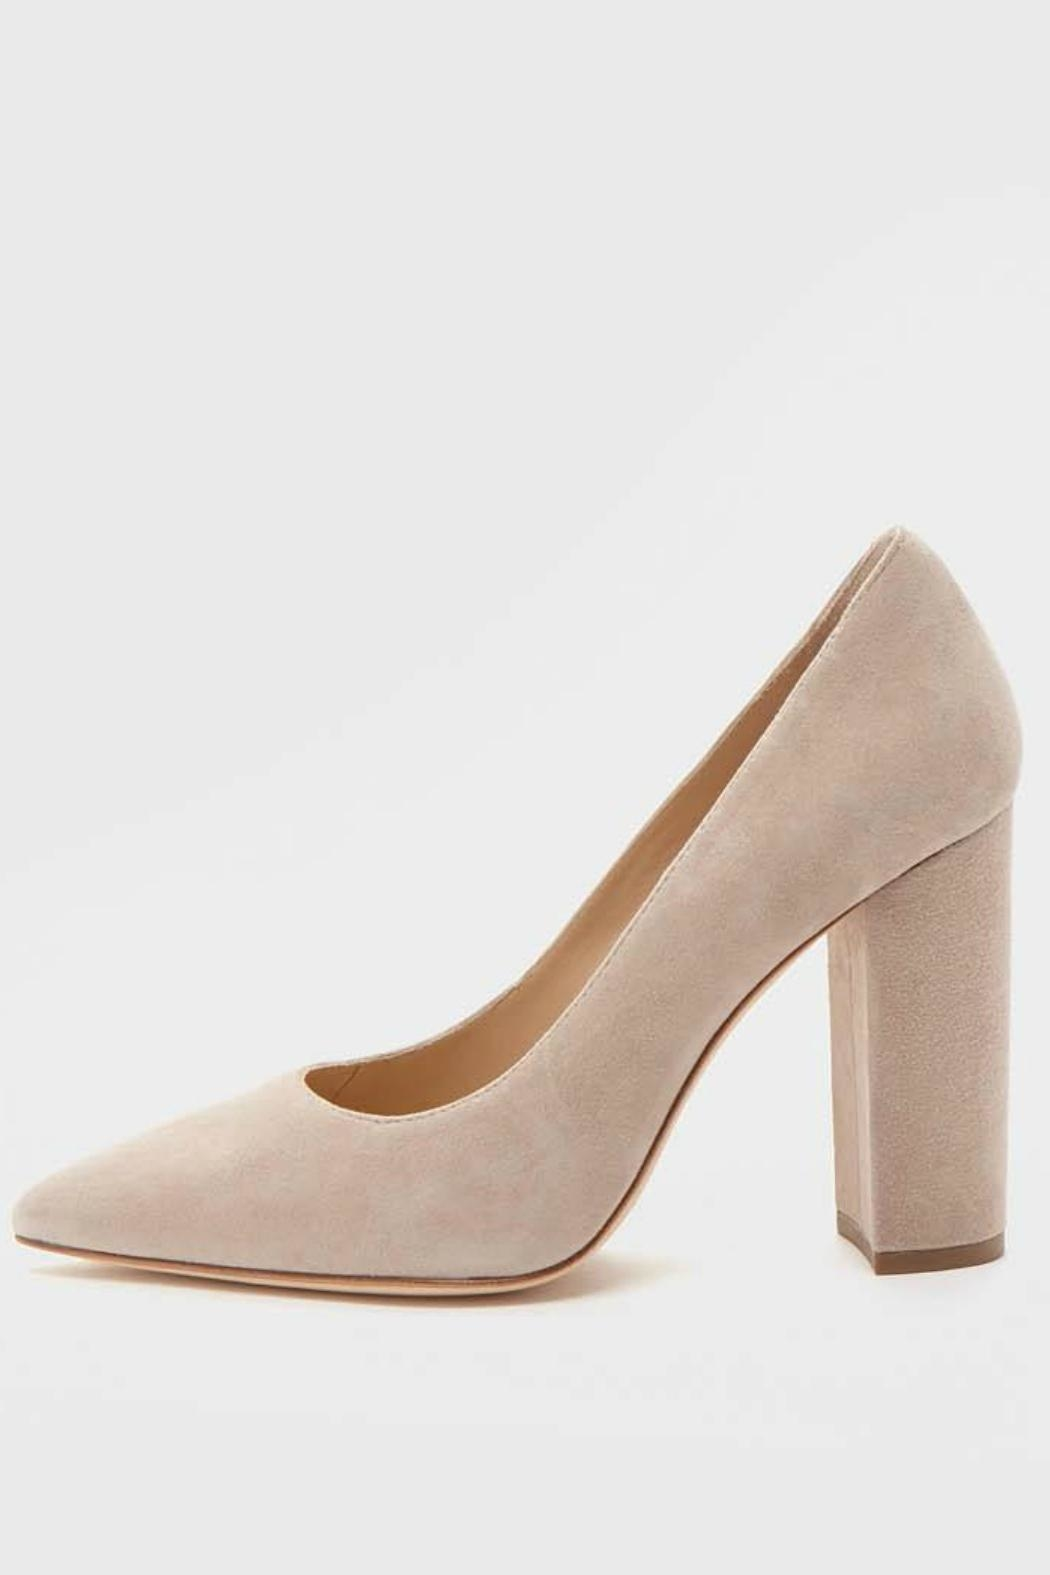 4c8194246b1 Pour La Victoire Celina Suede Pumps from New Hampshire by Stiletto ...